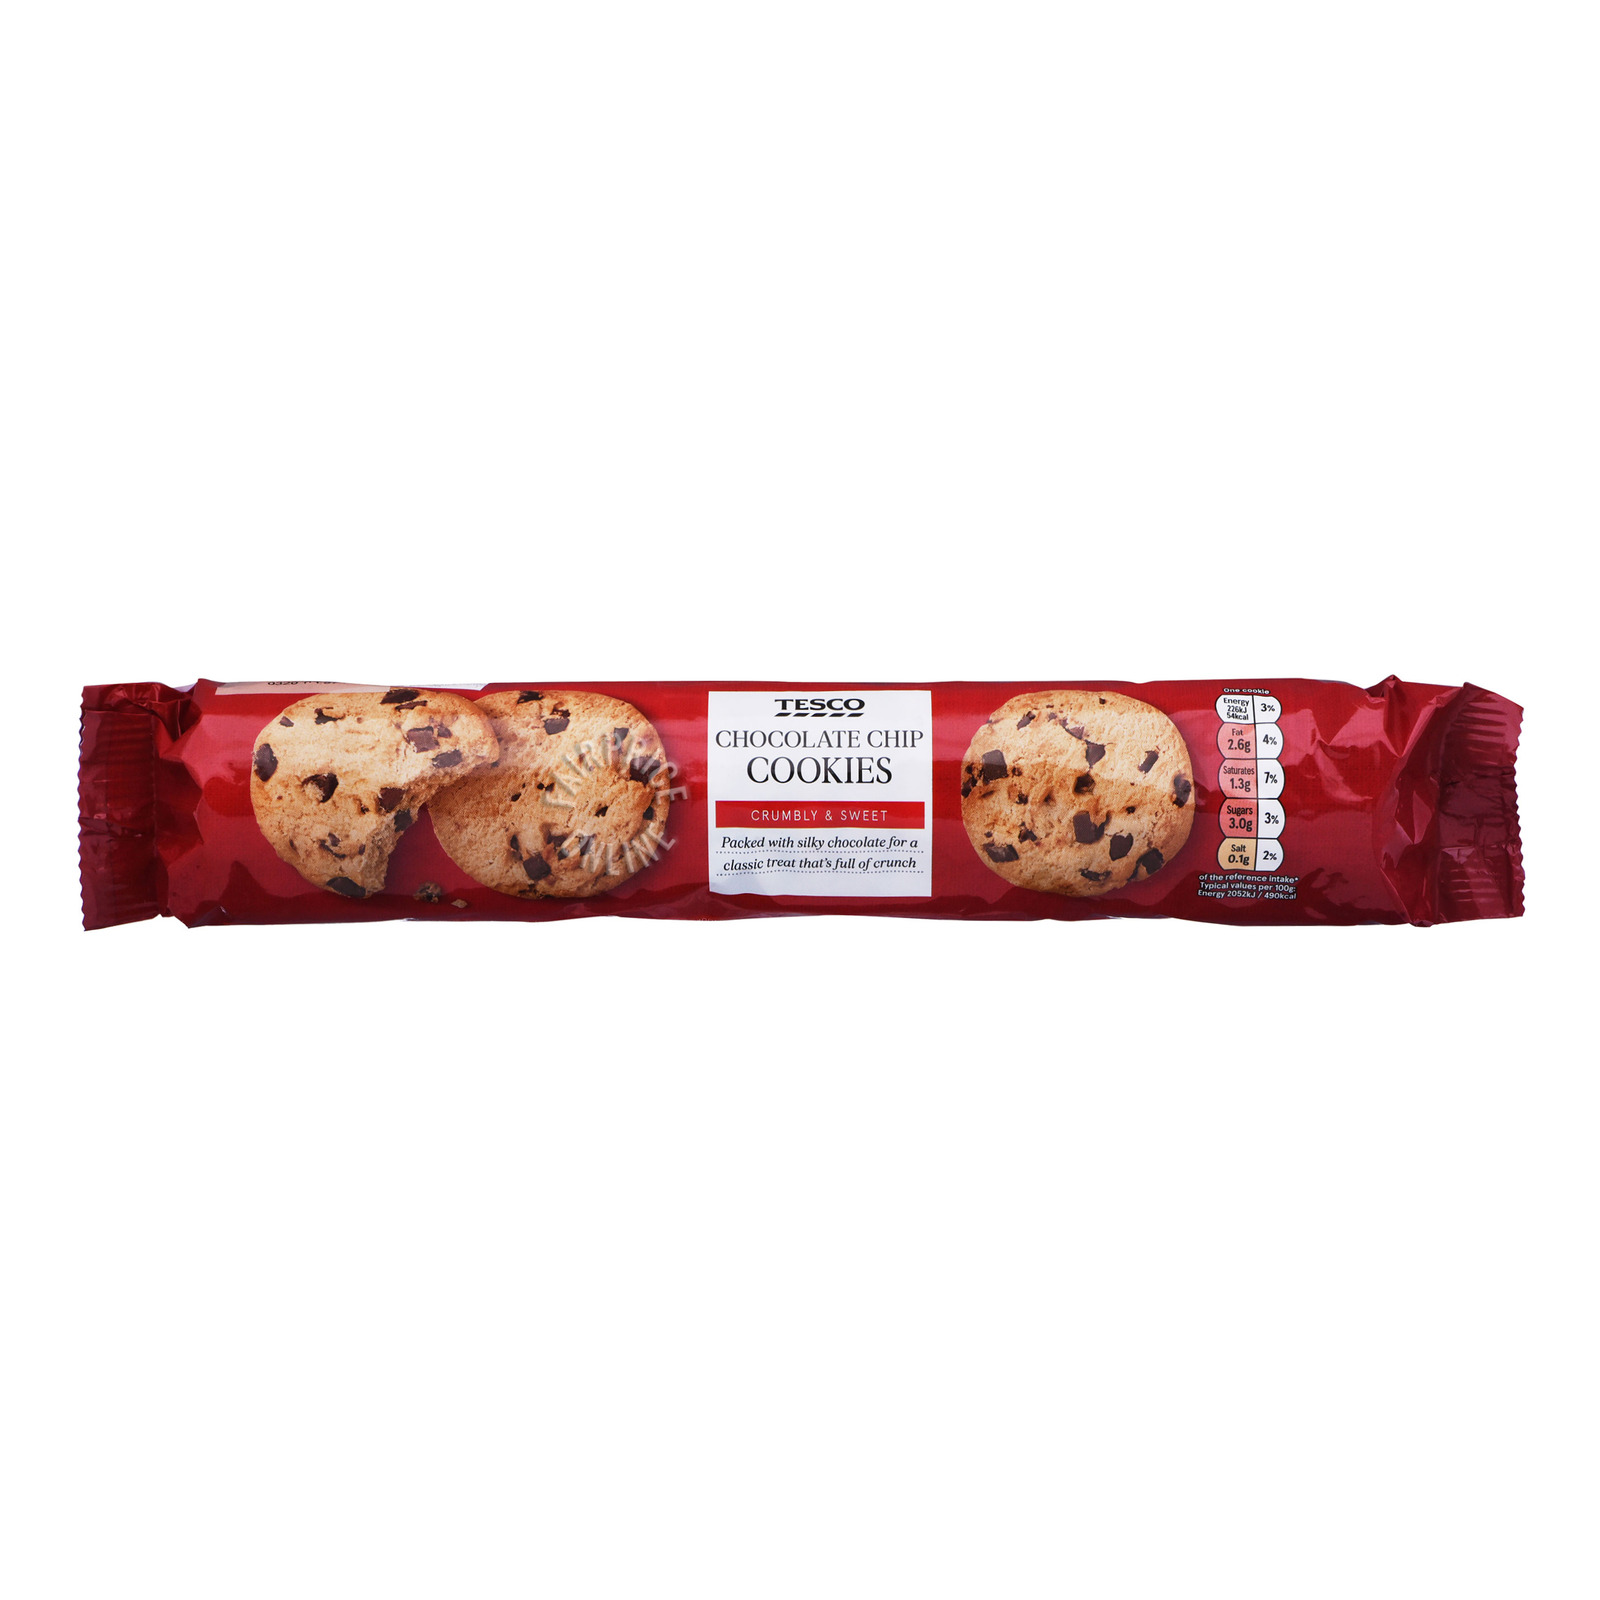 Tesco Cookies - Chocolate Chip